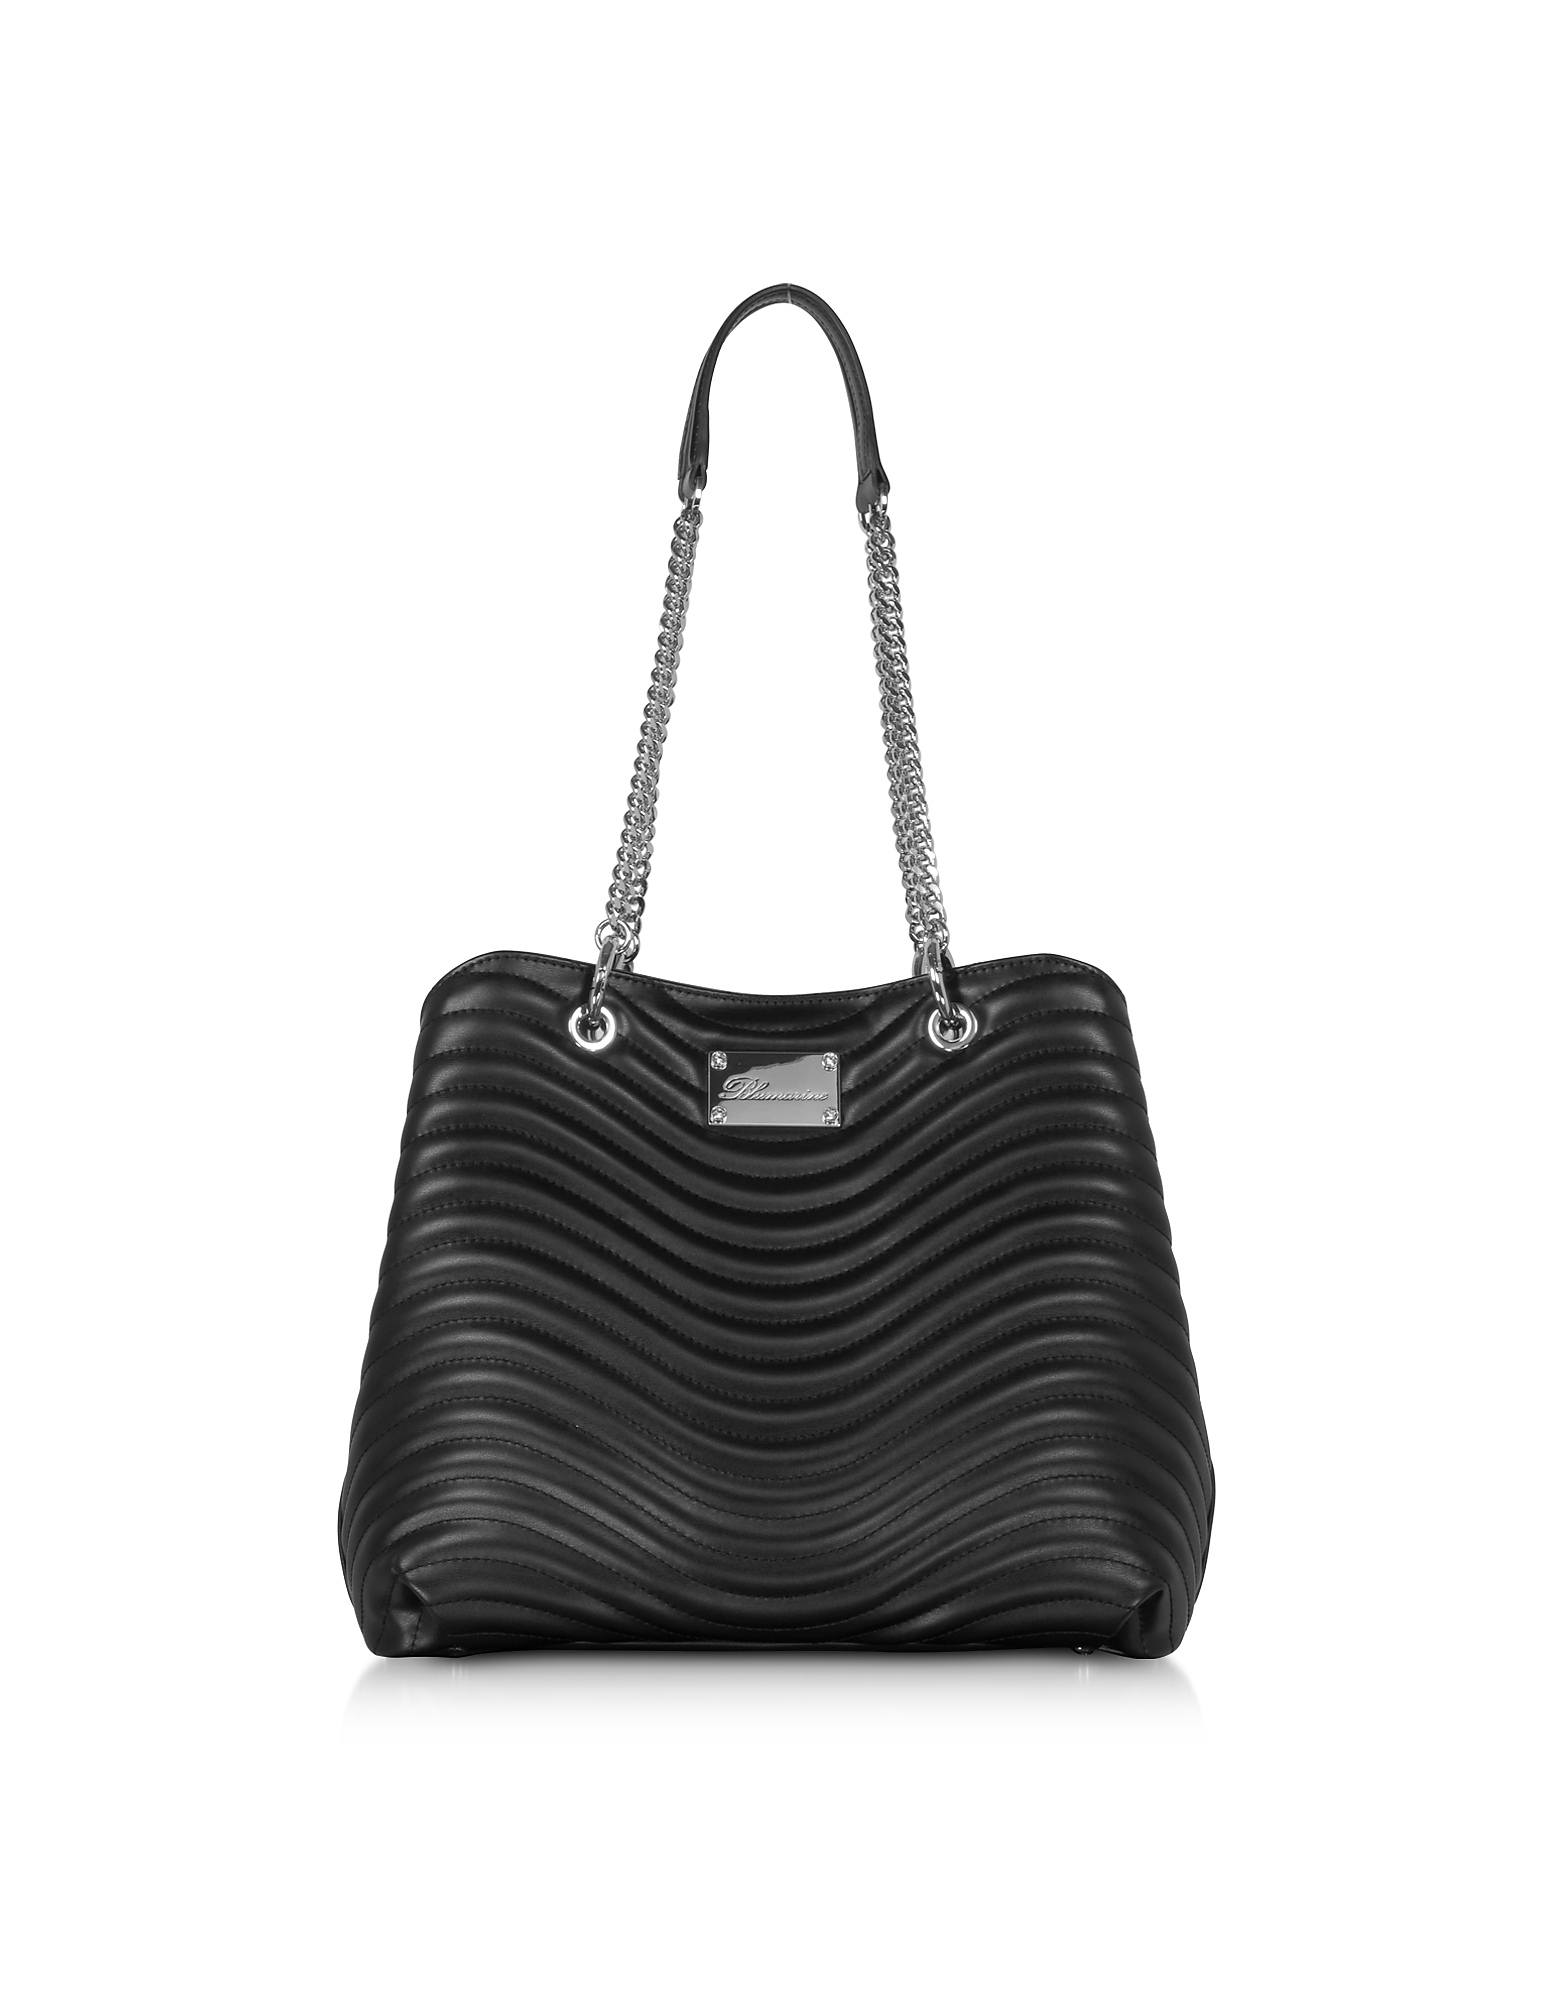 Blumarine Designer Handbags, Sophie Black Leather Tote Bag